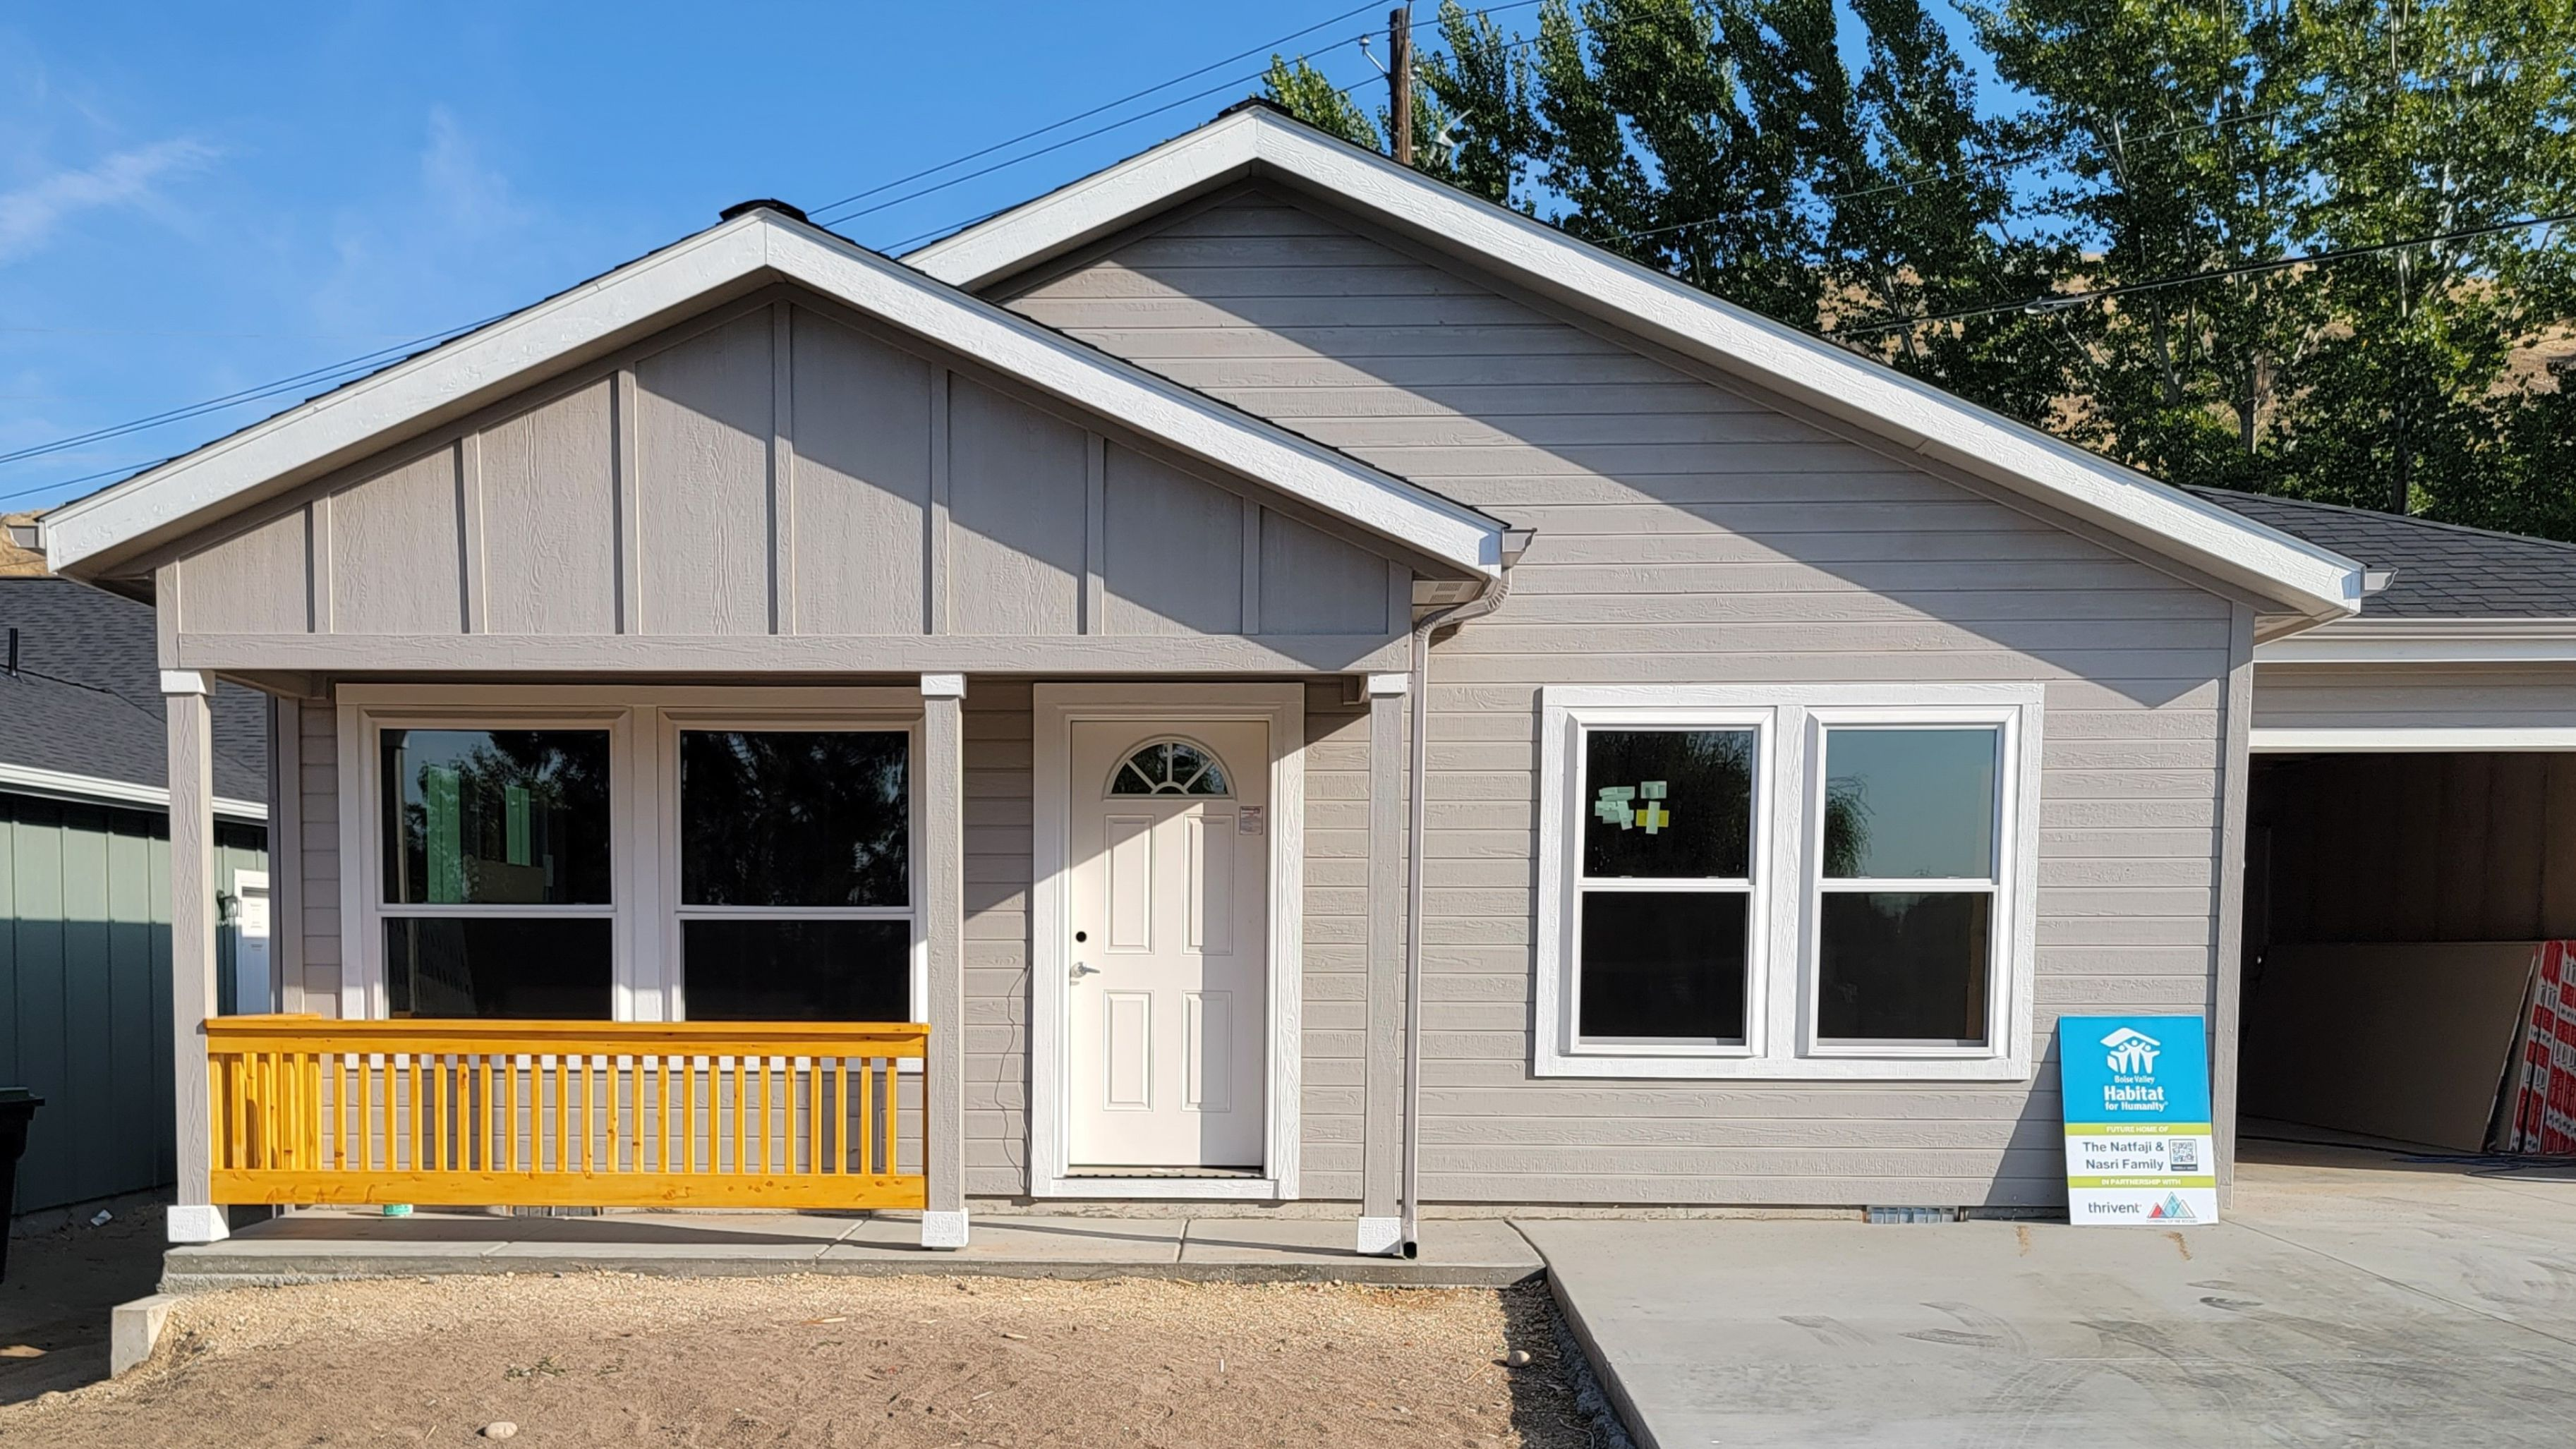 Work continues at Boise Valley Habitat for Humanity's third home-build on Gary Lane